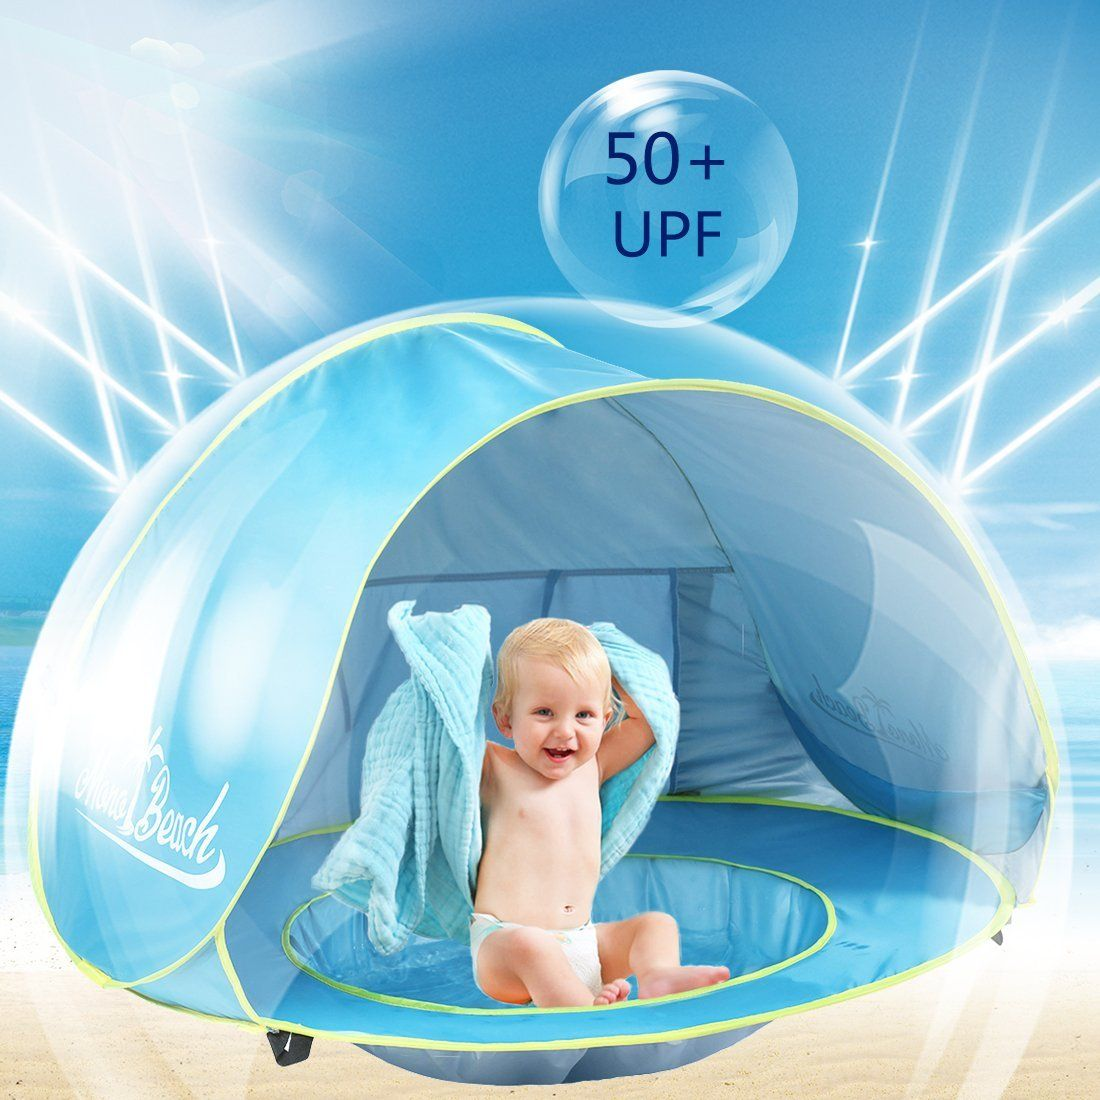 Amazon.com MonoBeach Baby Beach Tent Pop Up Portable Shade Pool UV Protection Sun  sc 1 st  Pinterest & Amazon.com: MonoBeach Baby Beach Tent Pop Up Portable Shade Pool ...